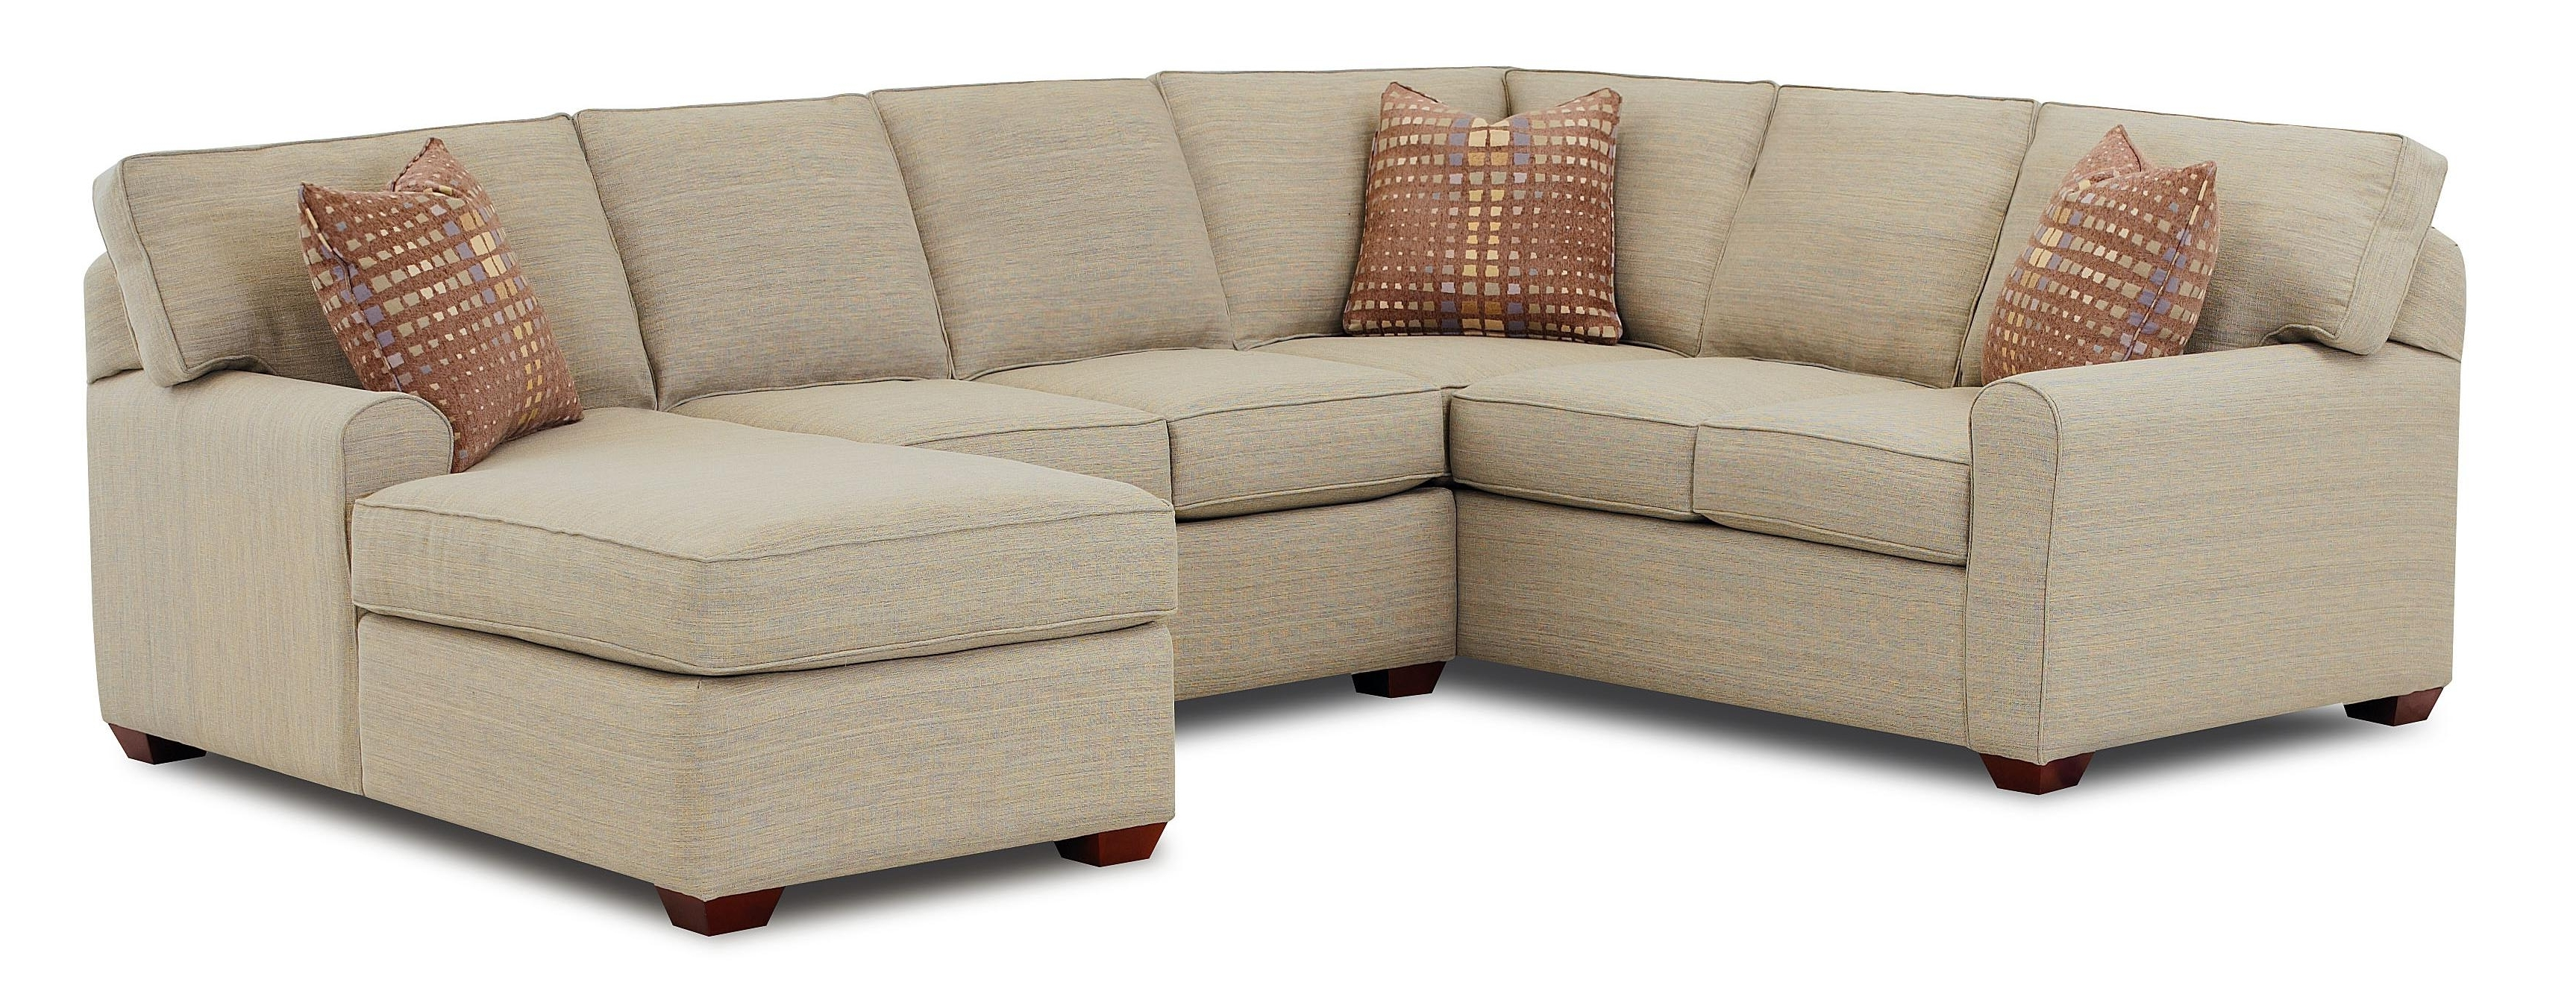 Popular Furniture: Chaise Sofa Sectional Chaise Sectional With Sectional Chaise Sofas (View 7 of 15)